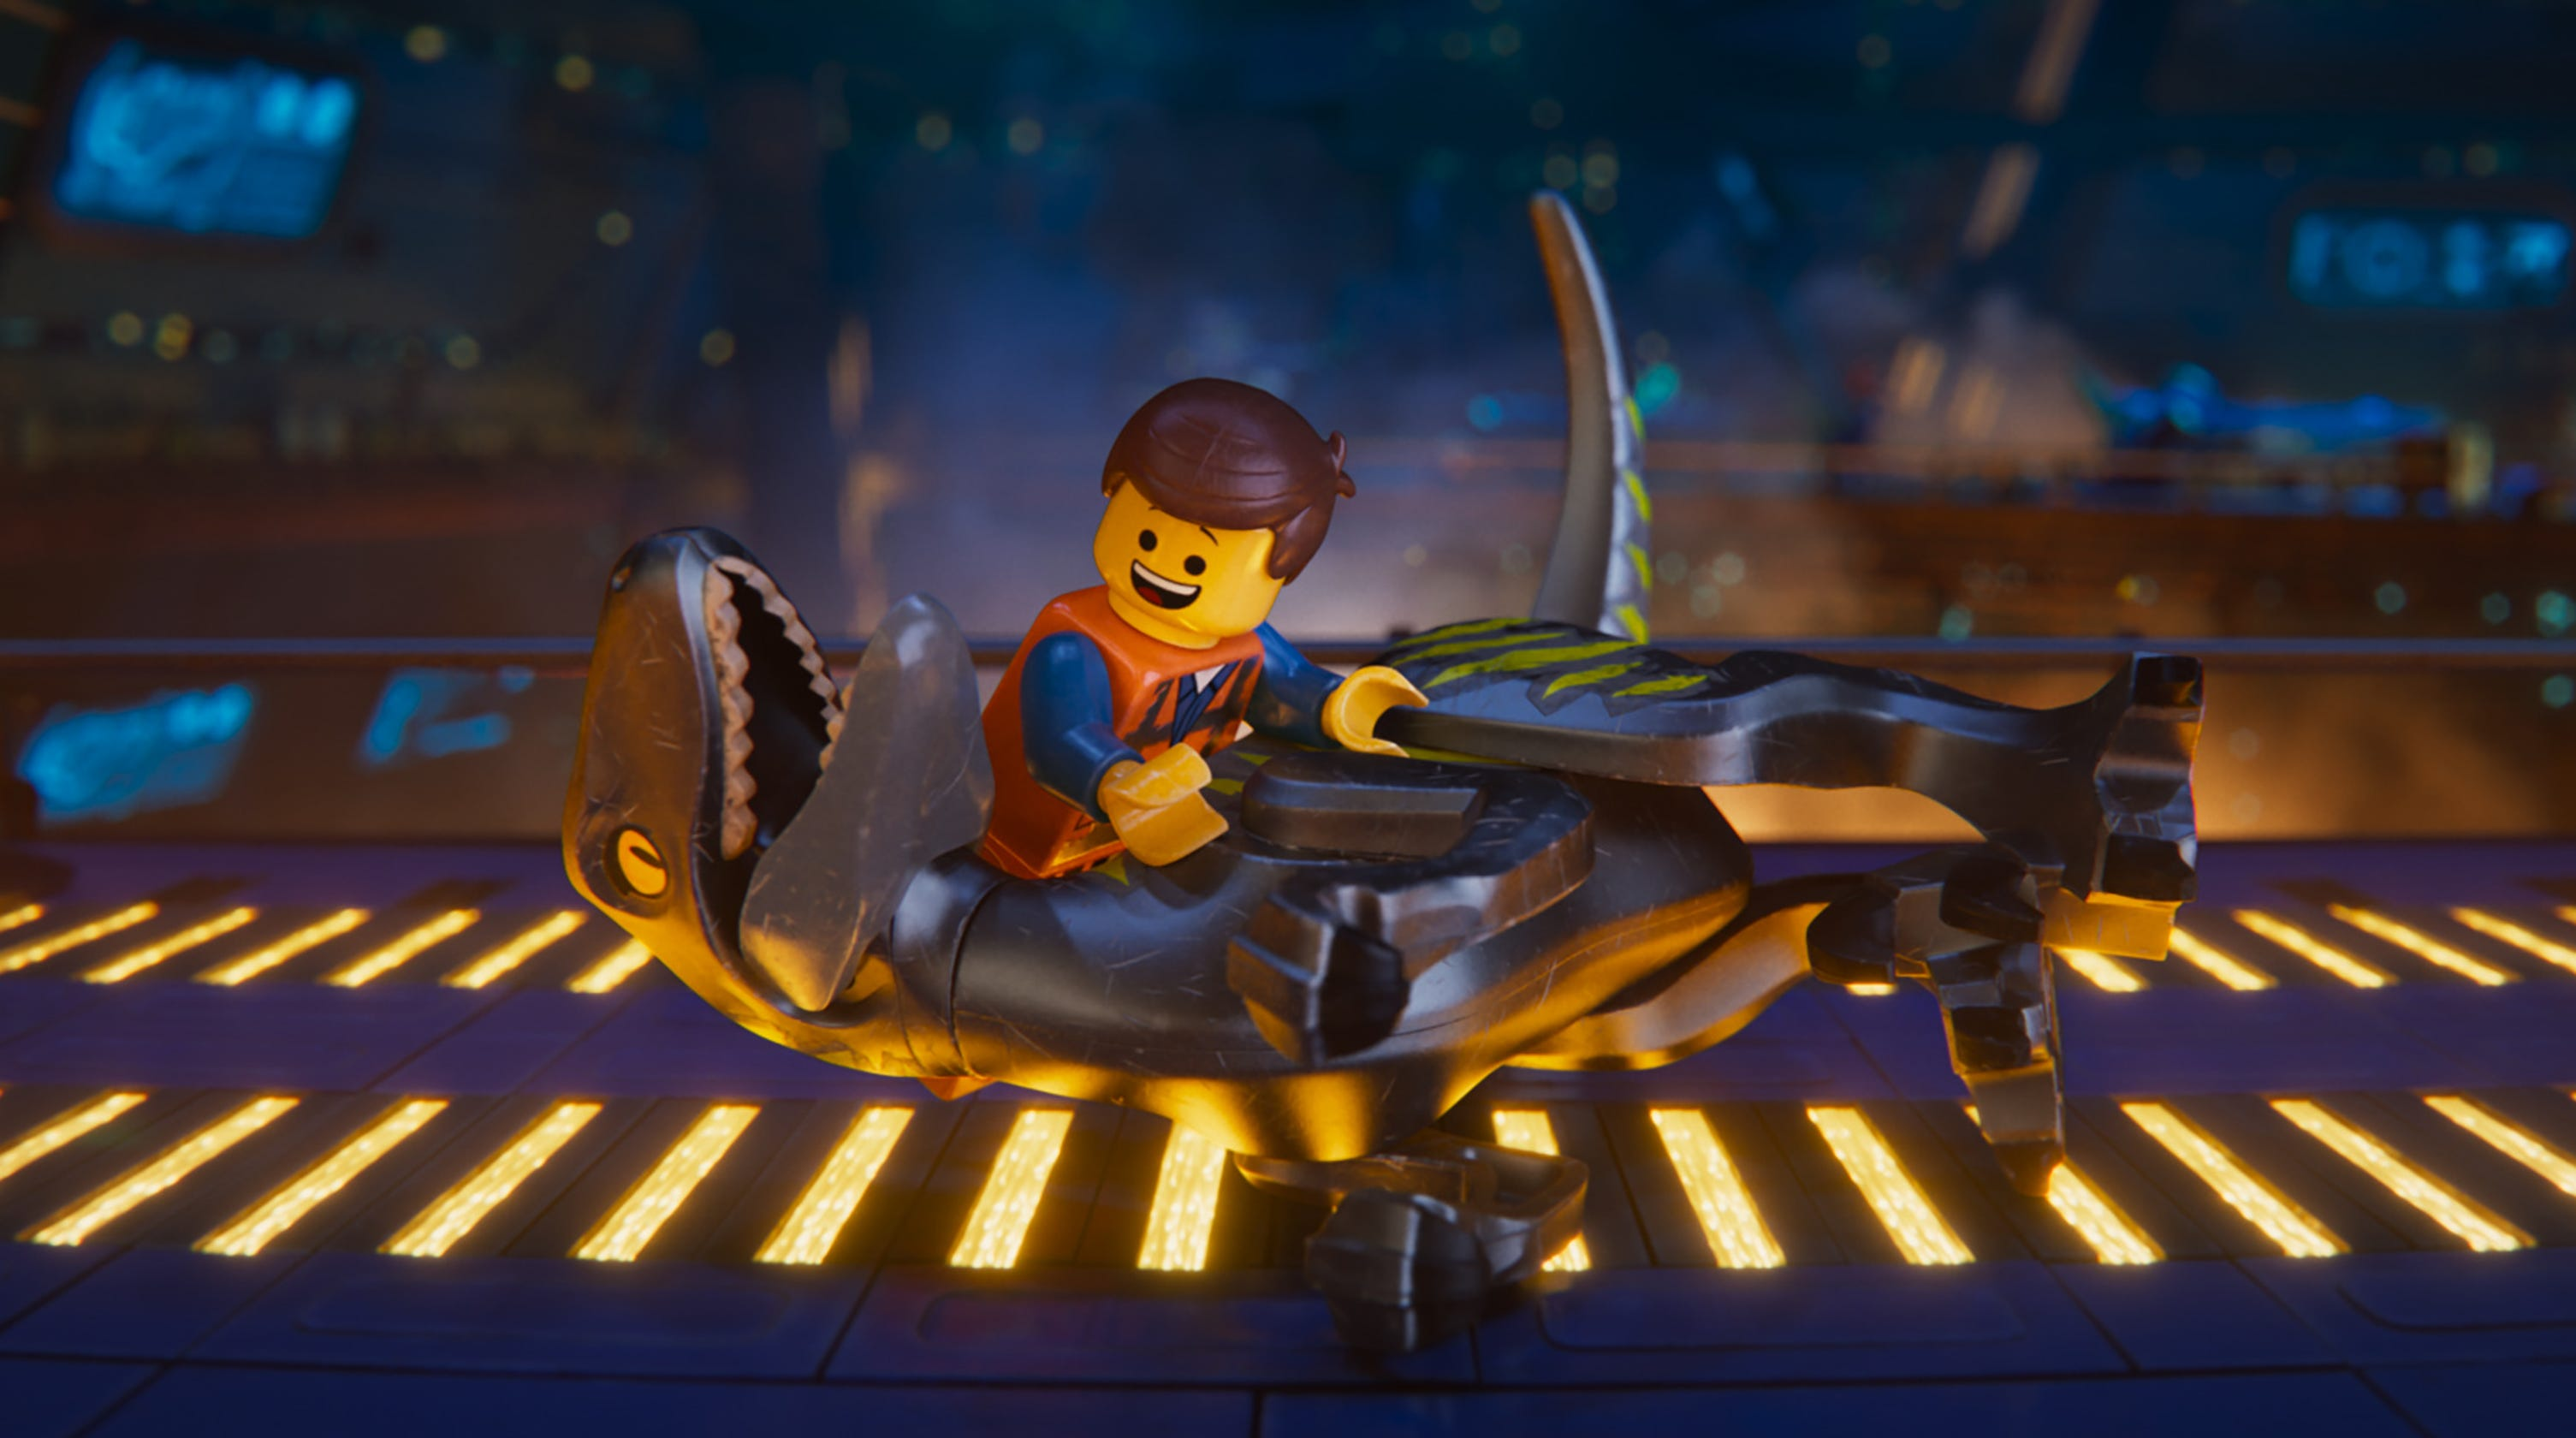 The Lego Movie 2: The Second Part' is familiar but still